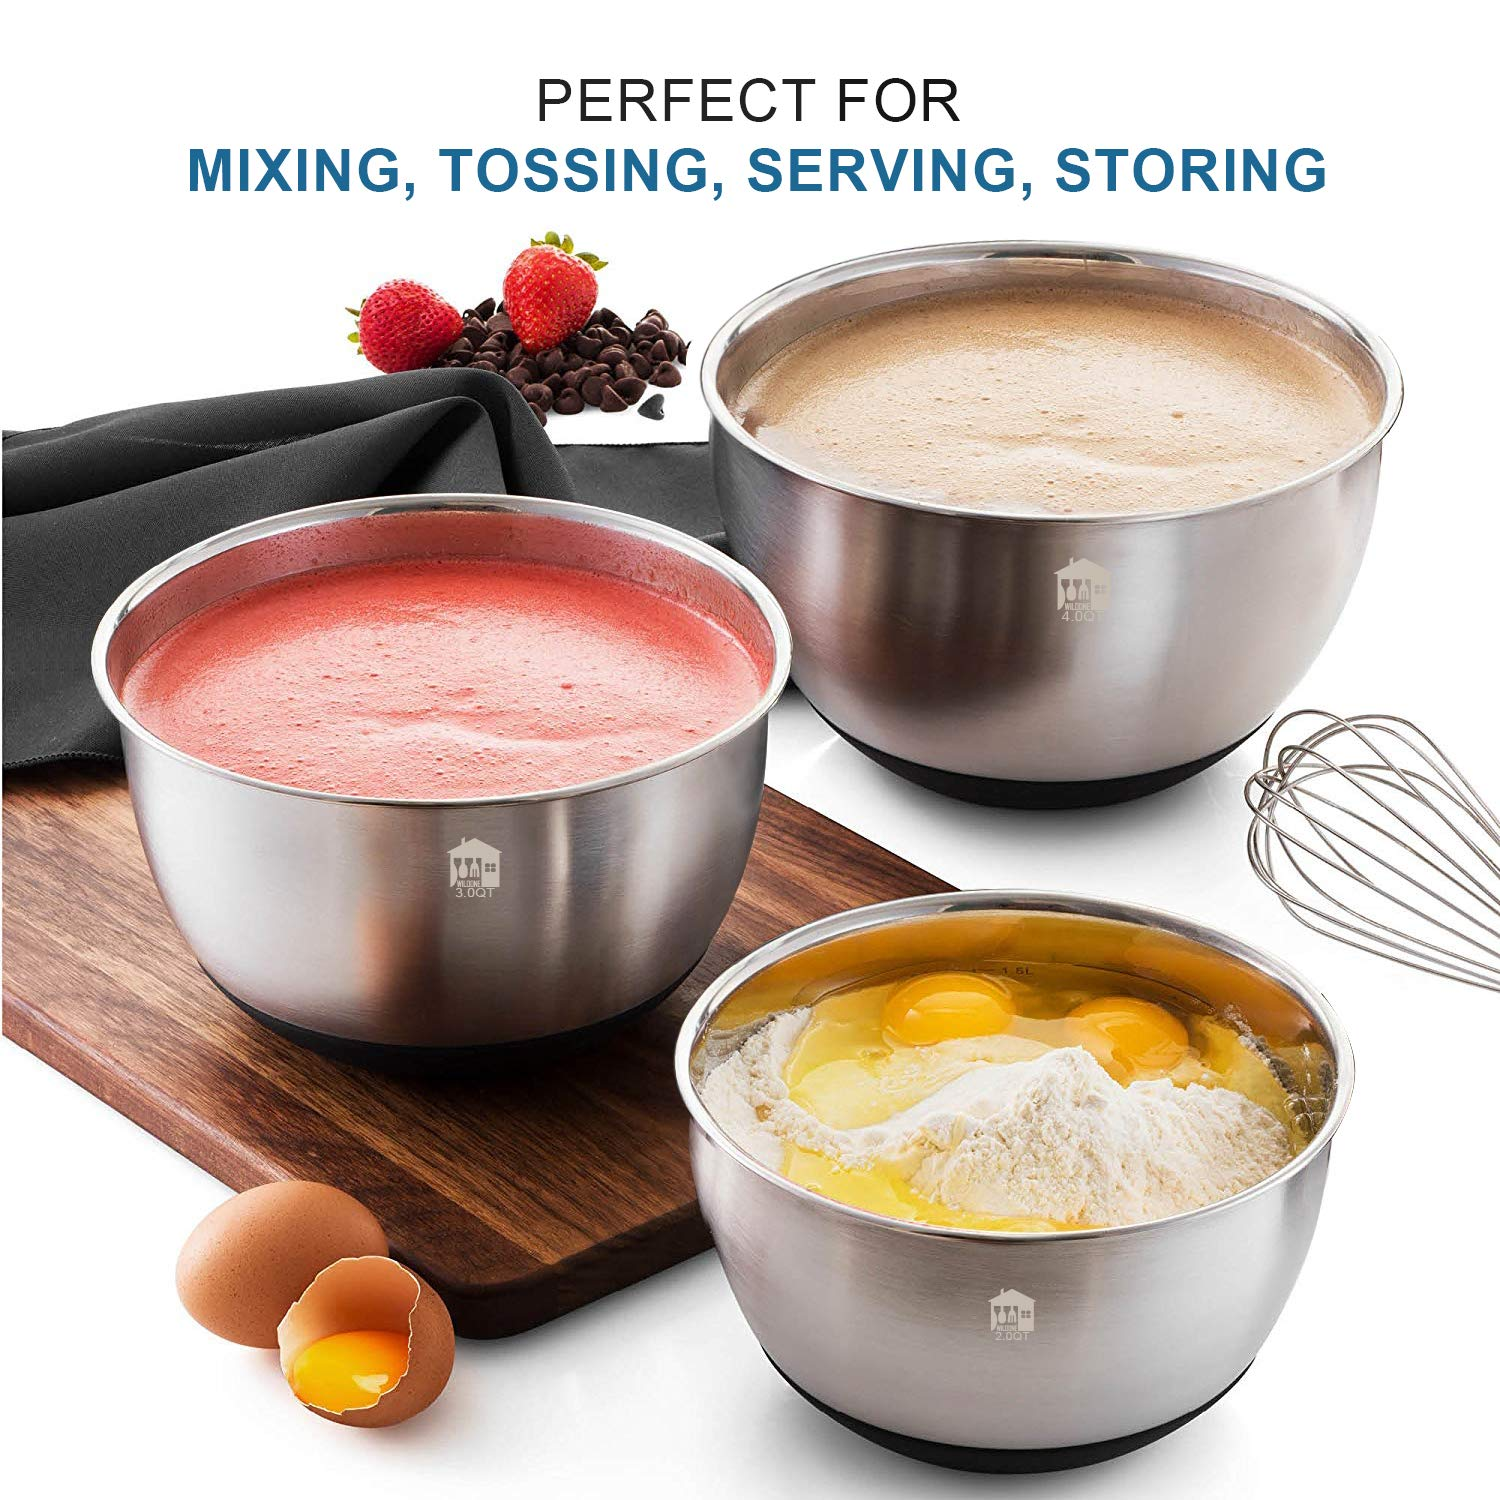 Wildone Stainless Steel Mixing Bowls, Nesting Bowls with Airtight Lids, Measurement Marks, Non Slip Silicone Bottoms, for Easy Mixing & Prepping - Set of 6 by Wildone (Image #4)